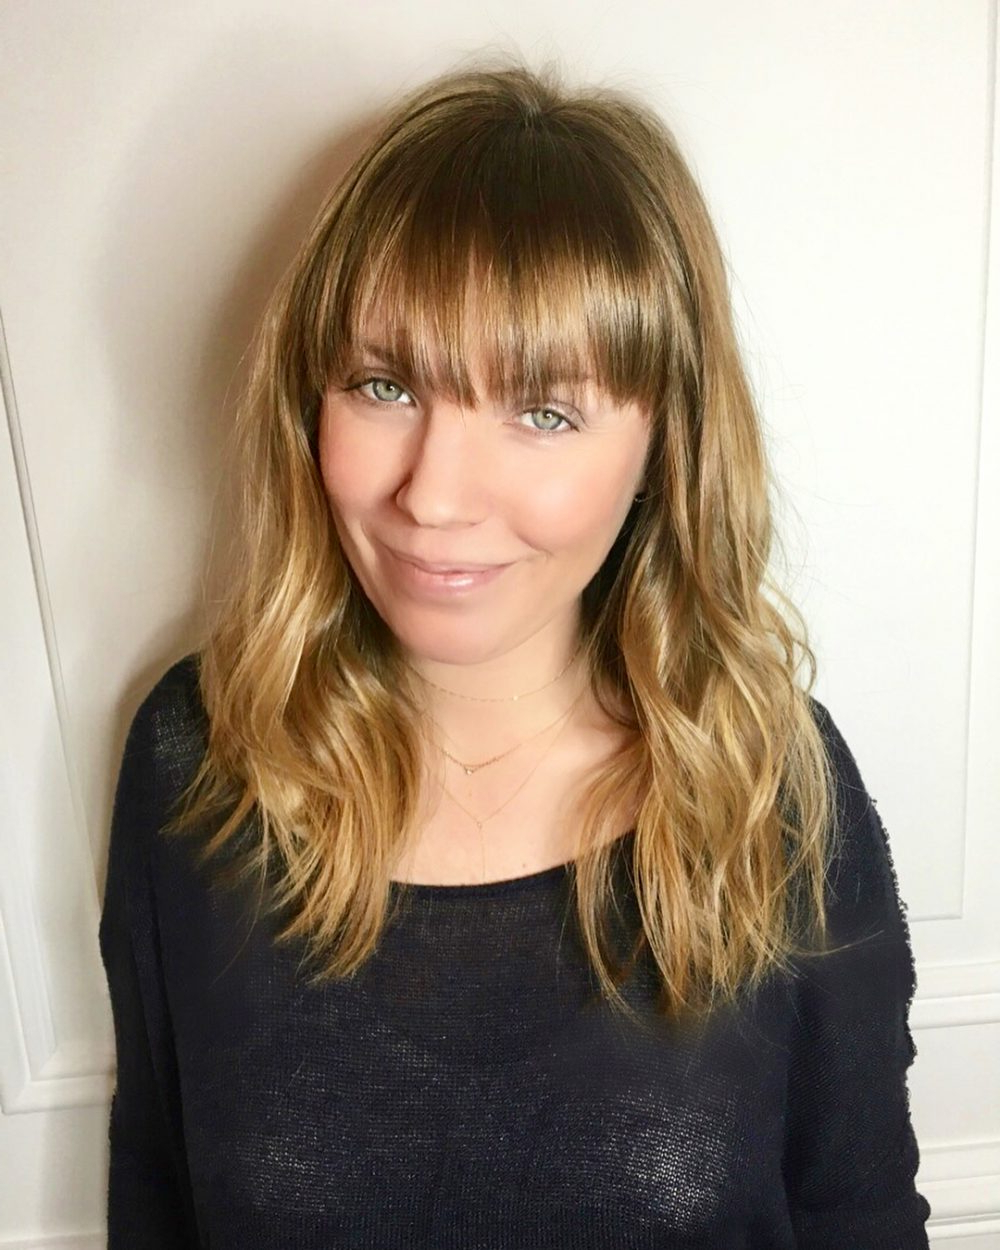 53 Popular Medium Length Hairstyles With Bangs In 2019 Intended For Famous Medium Hairstyles With Bangs (View 3 of 20)